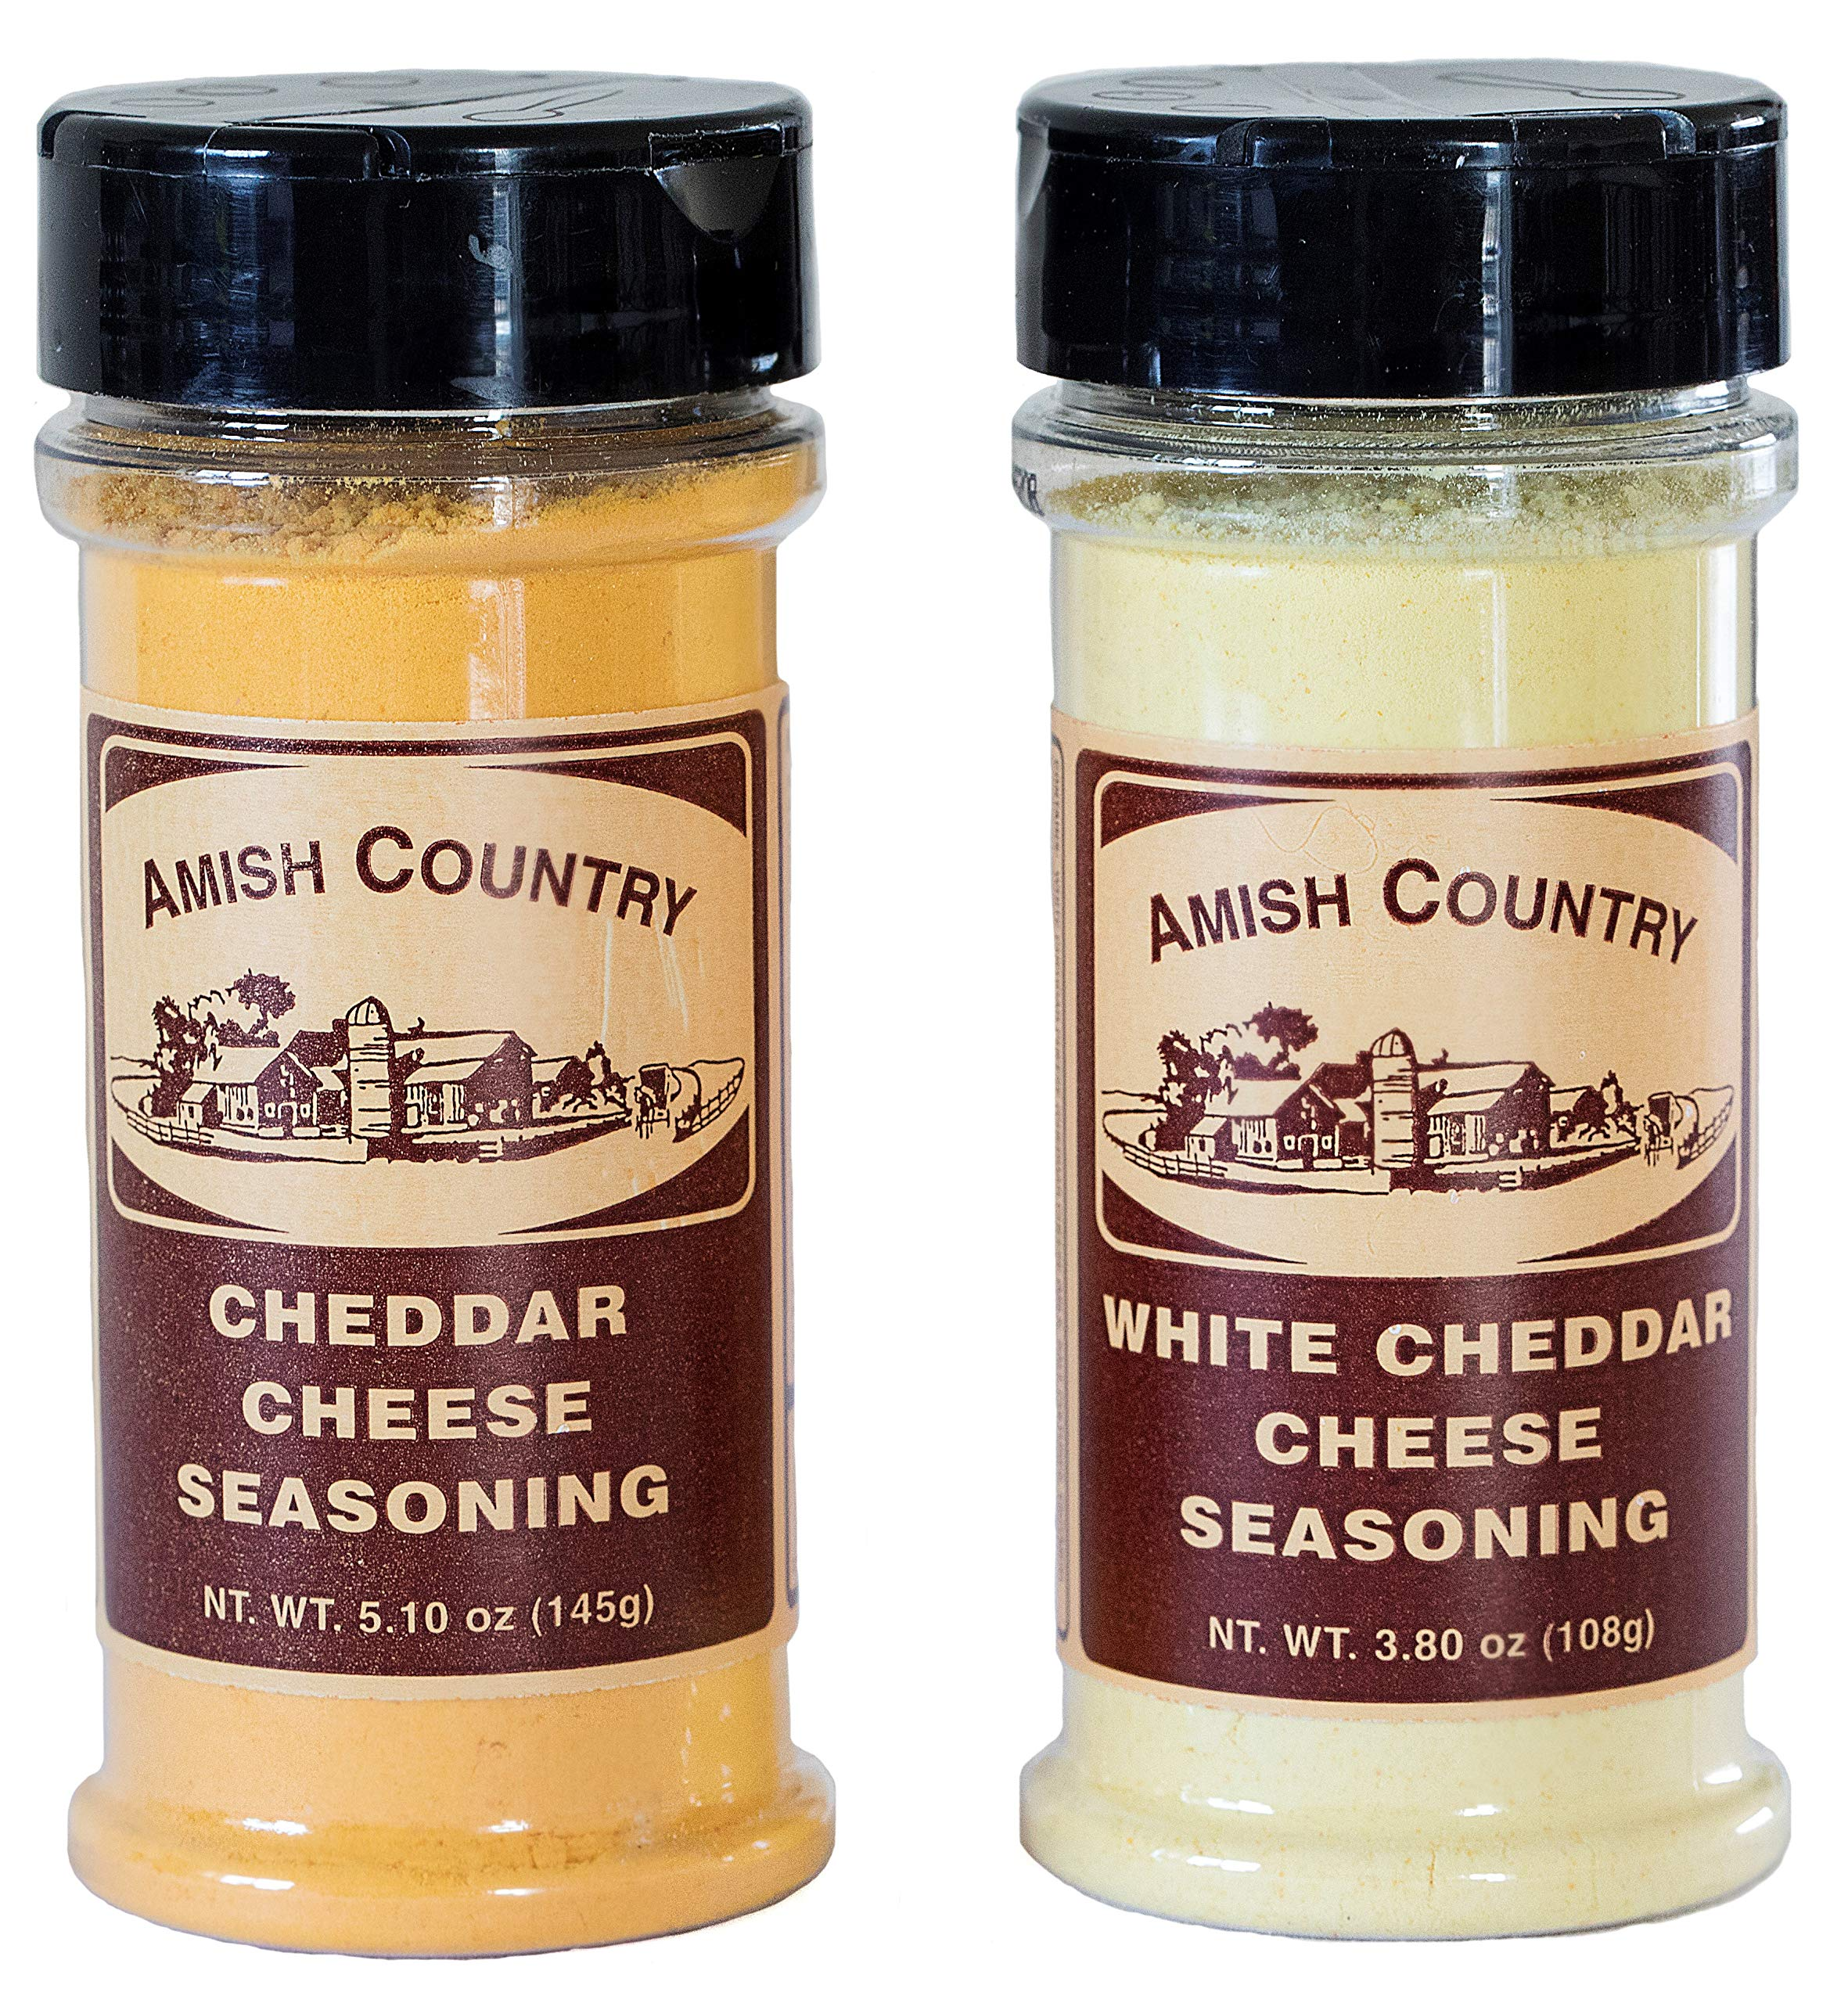 Amish Country Popcorn - Cheddar & White Cheddar Popcorn Seasoning (2 Pack) with Recipe Guide